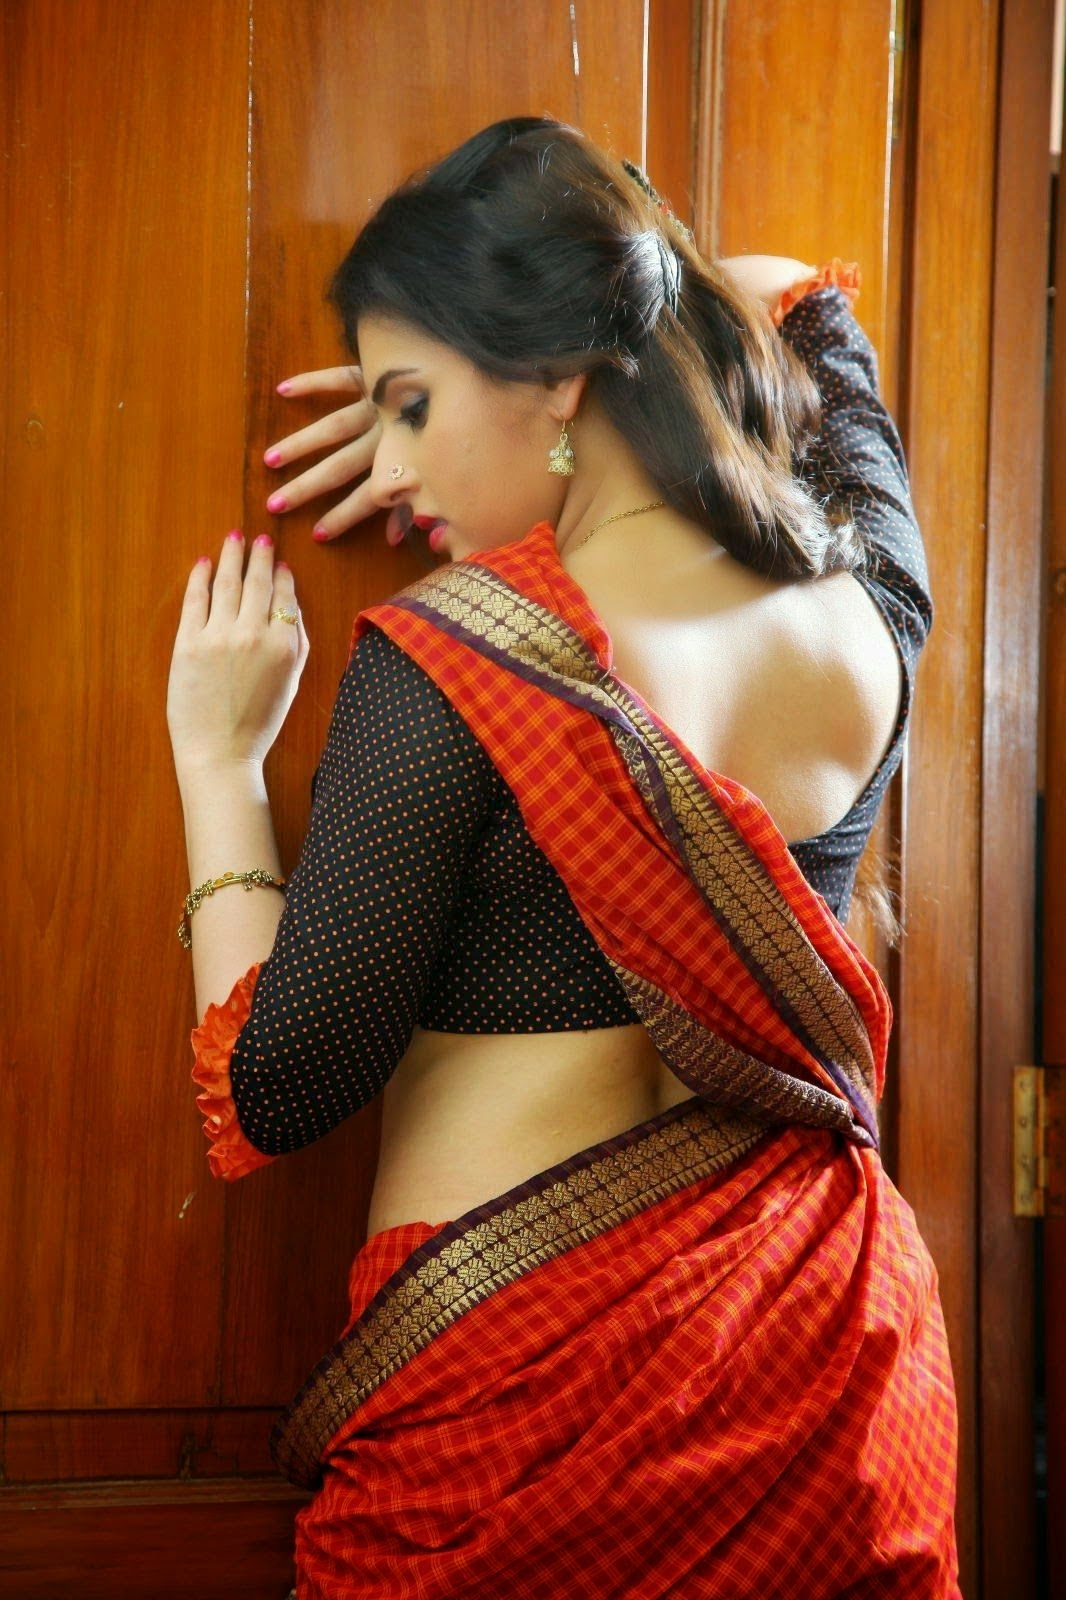 sexy-indian-girls-in-saree-hardcore-transexuals-jelsoft-enterprises-ltd